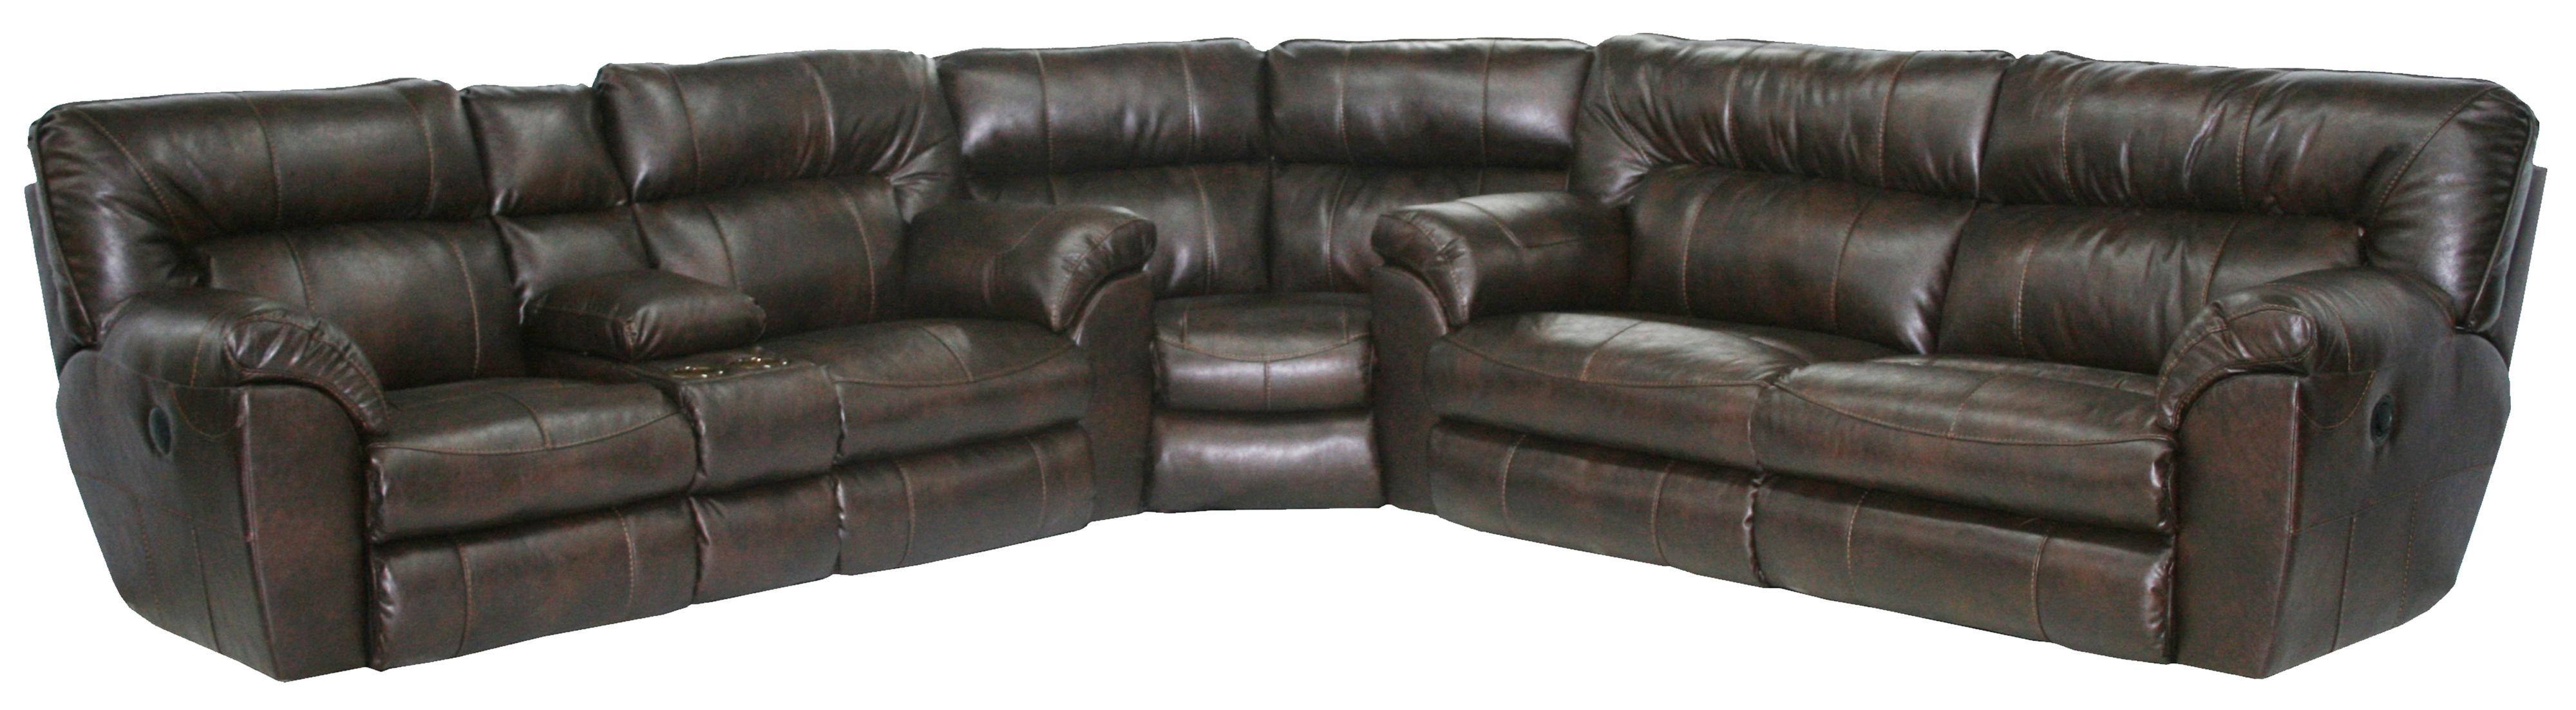 Power Reclining Sectional Sofa With Left Consolecatnapper Intended For Catnapper Sofas (Image 15 of 20)